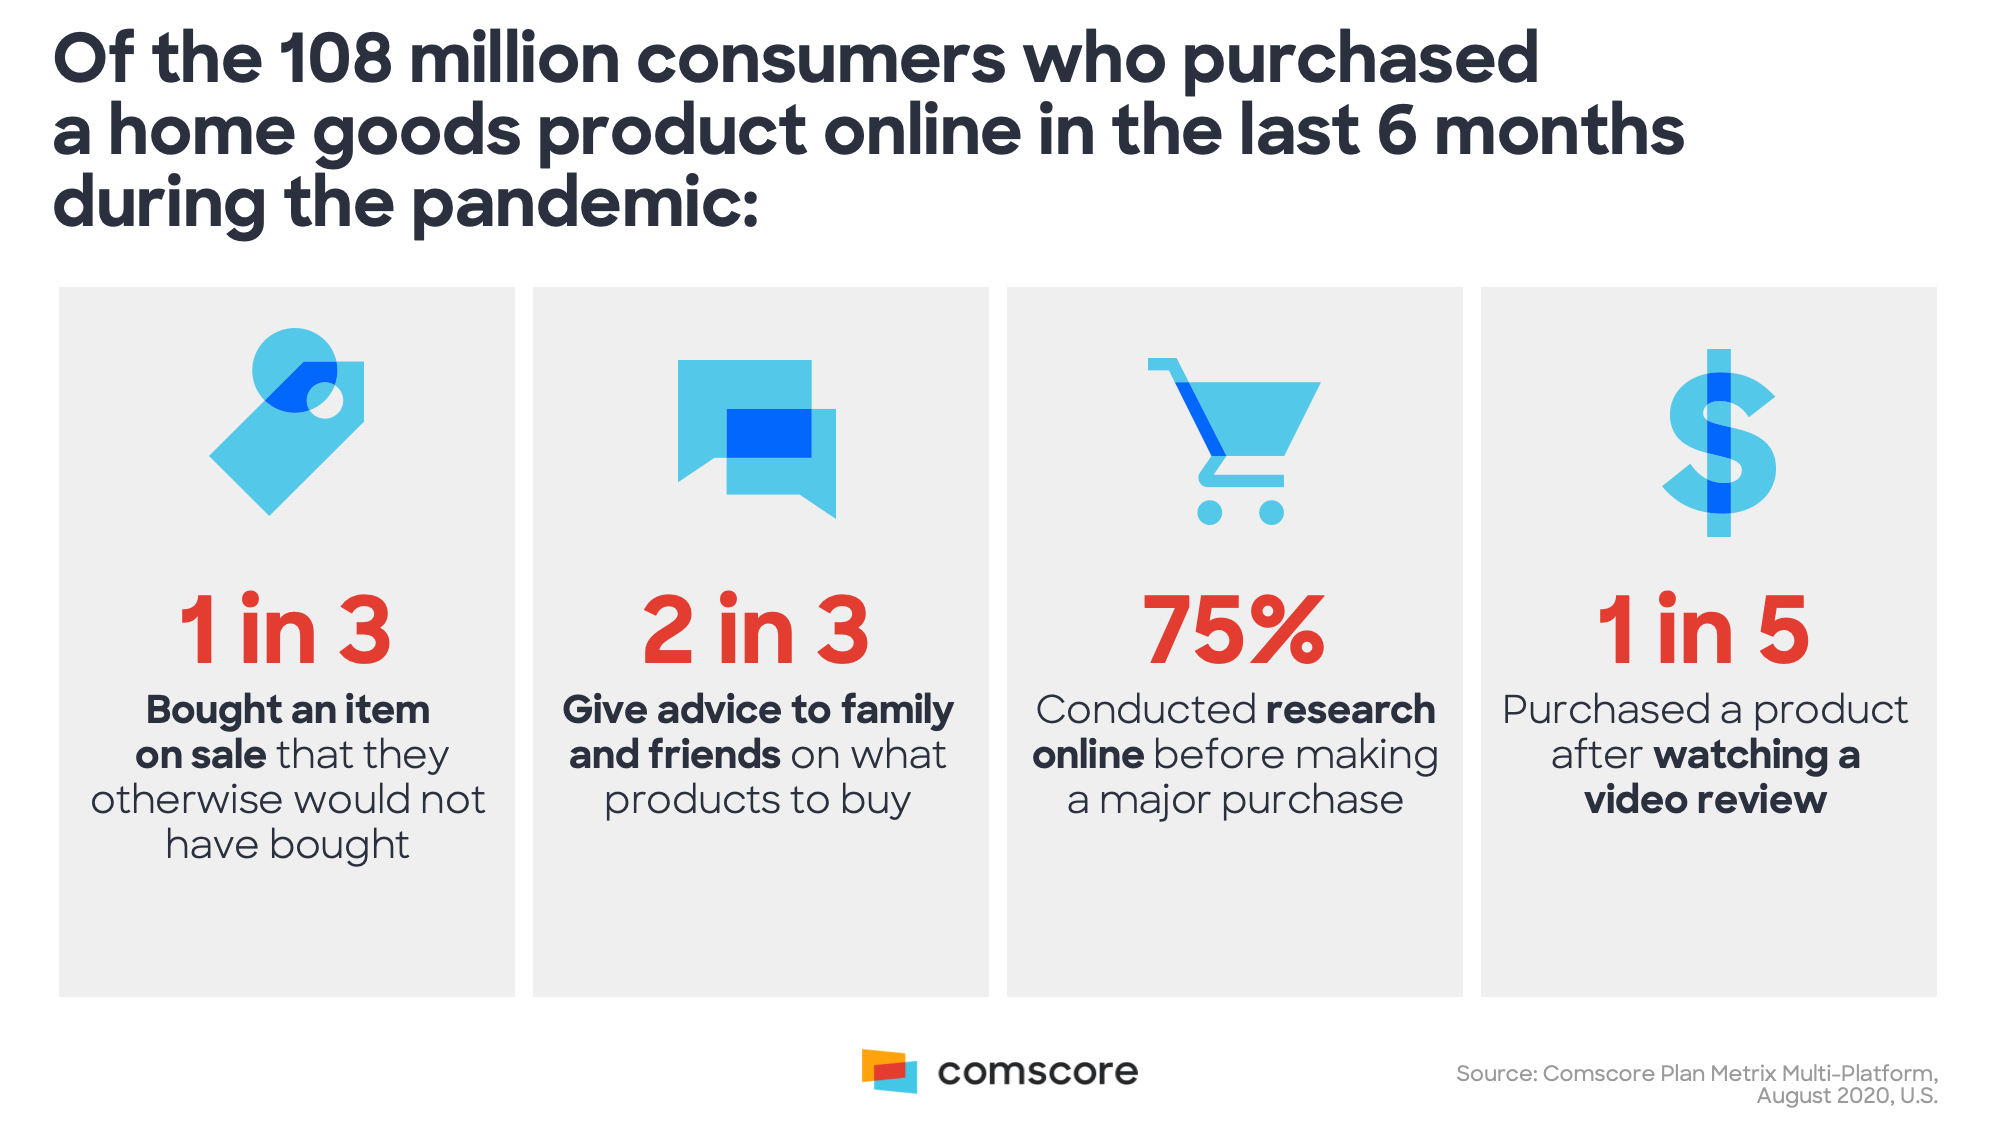 Of the 180 million consumers who purchased a home goods product in the last 6 months during the pandemic